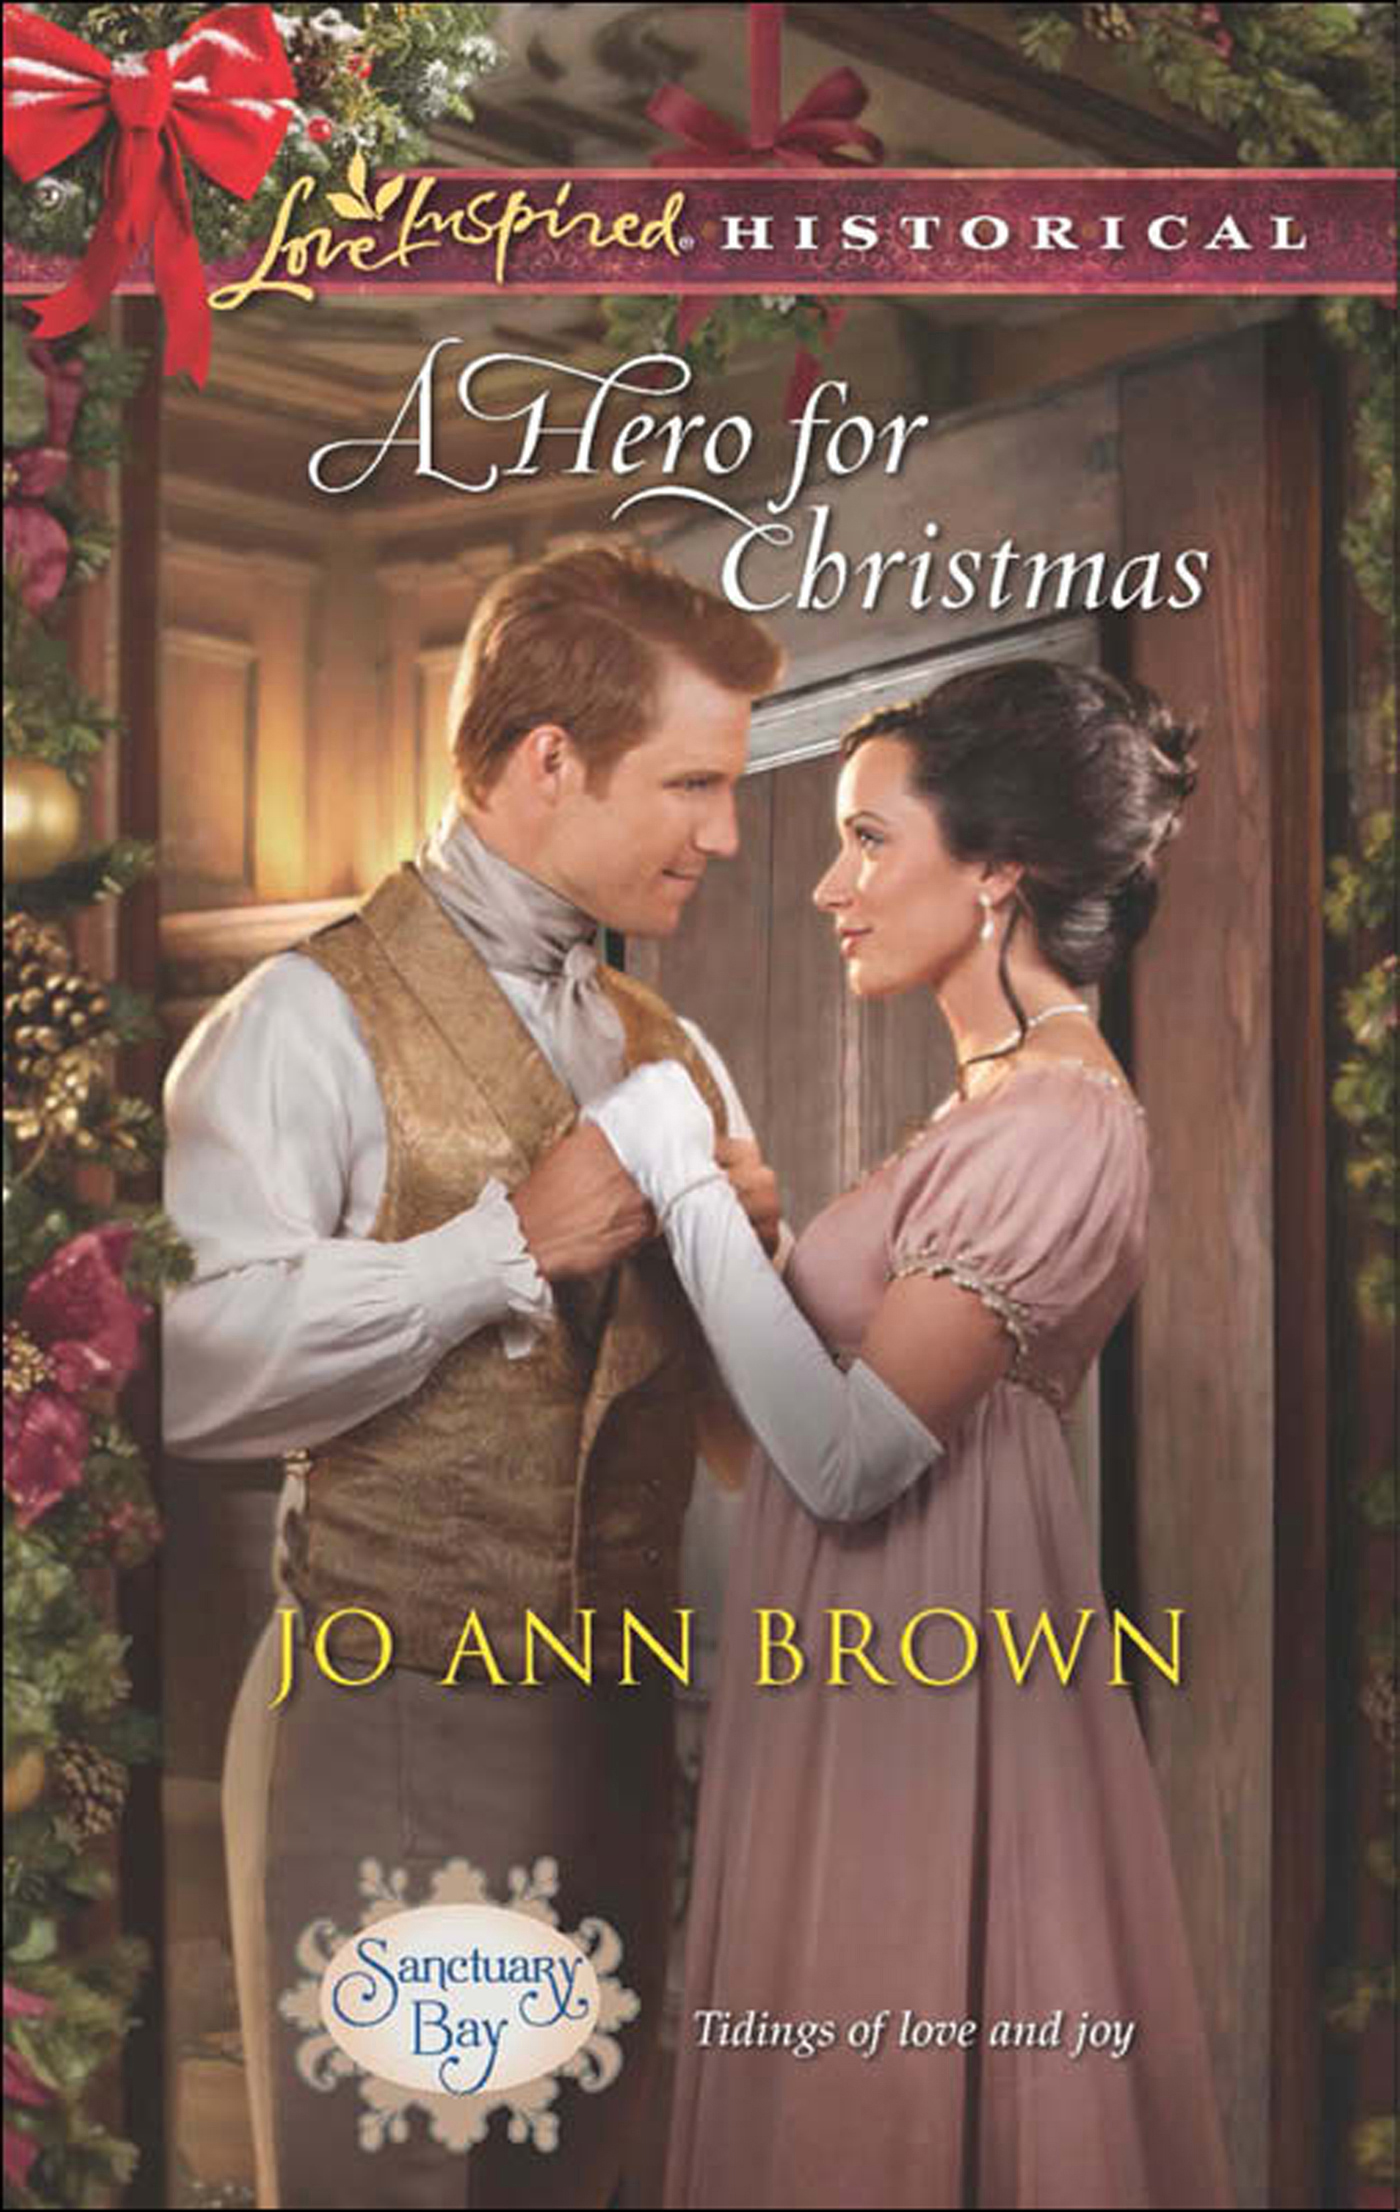 A Hero for Christmas (Mills & Boon Love Inspired Historical) (Sanctuary Bay - Book 2)